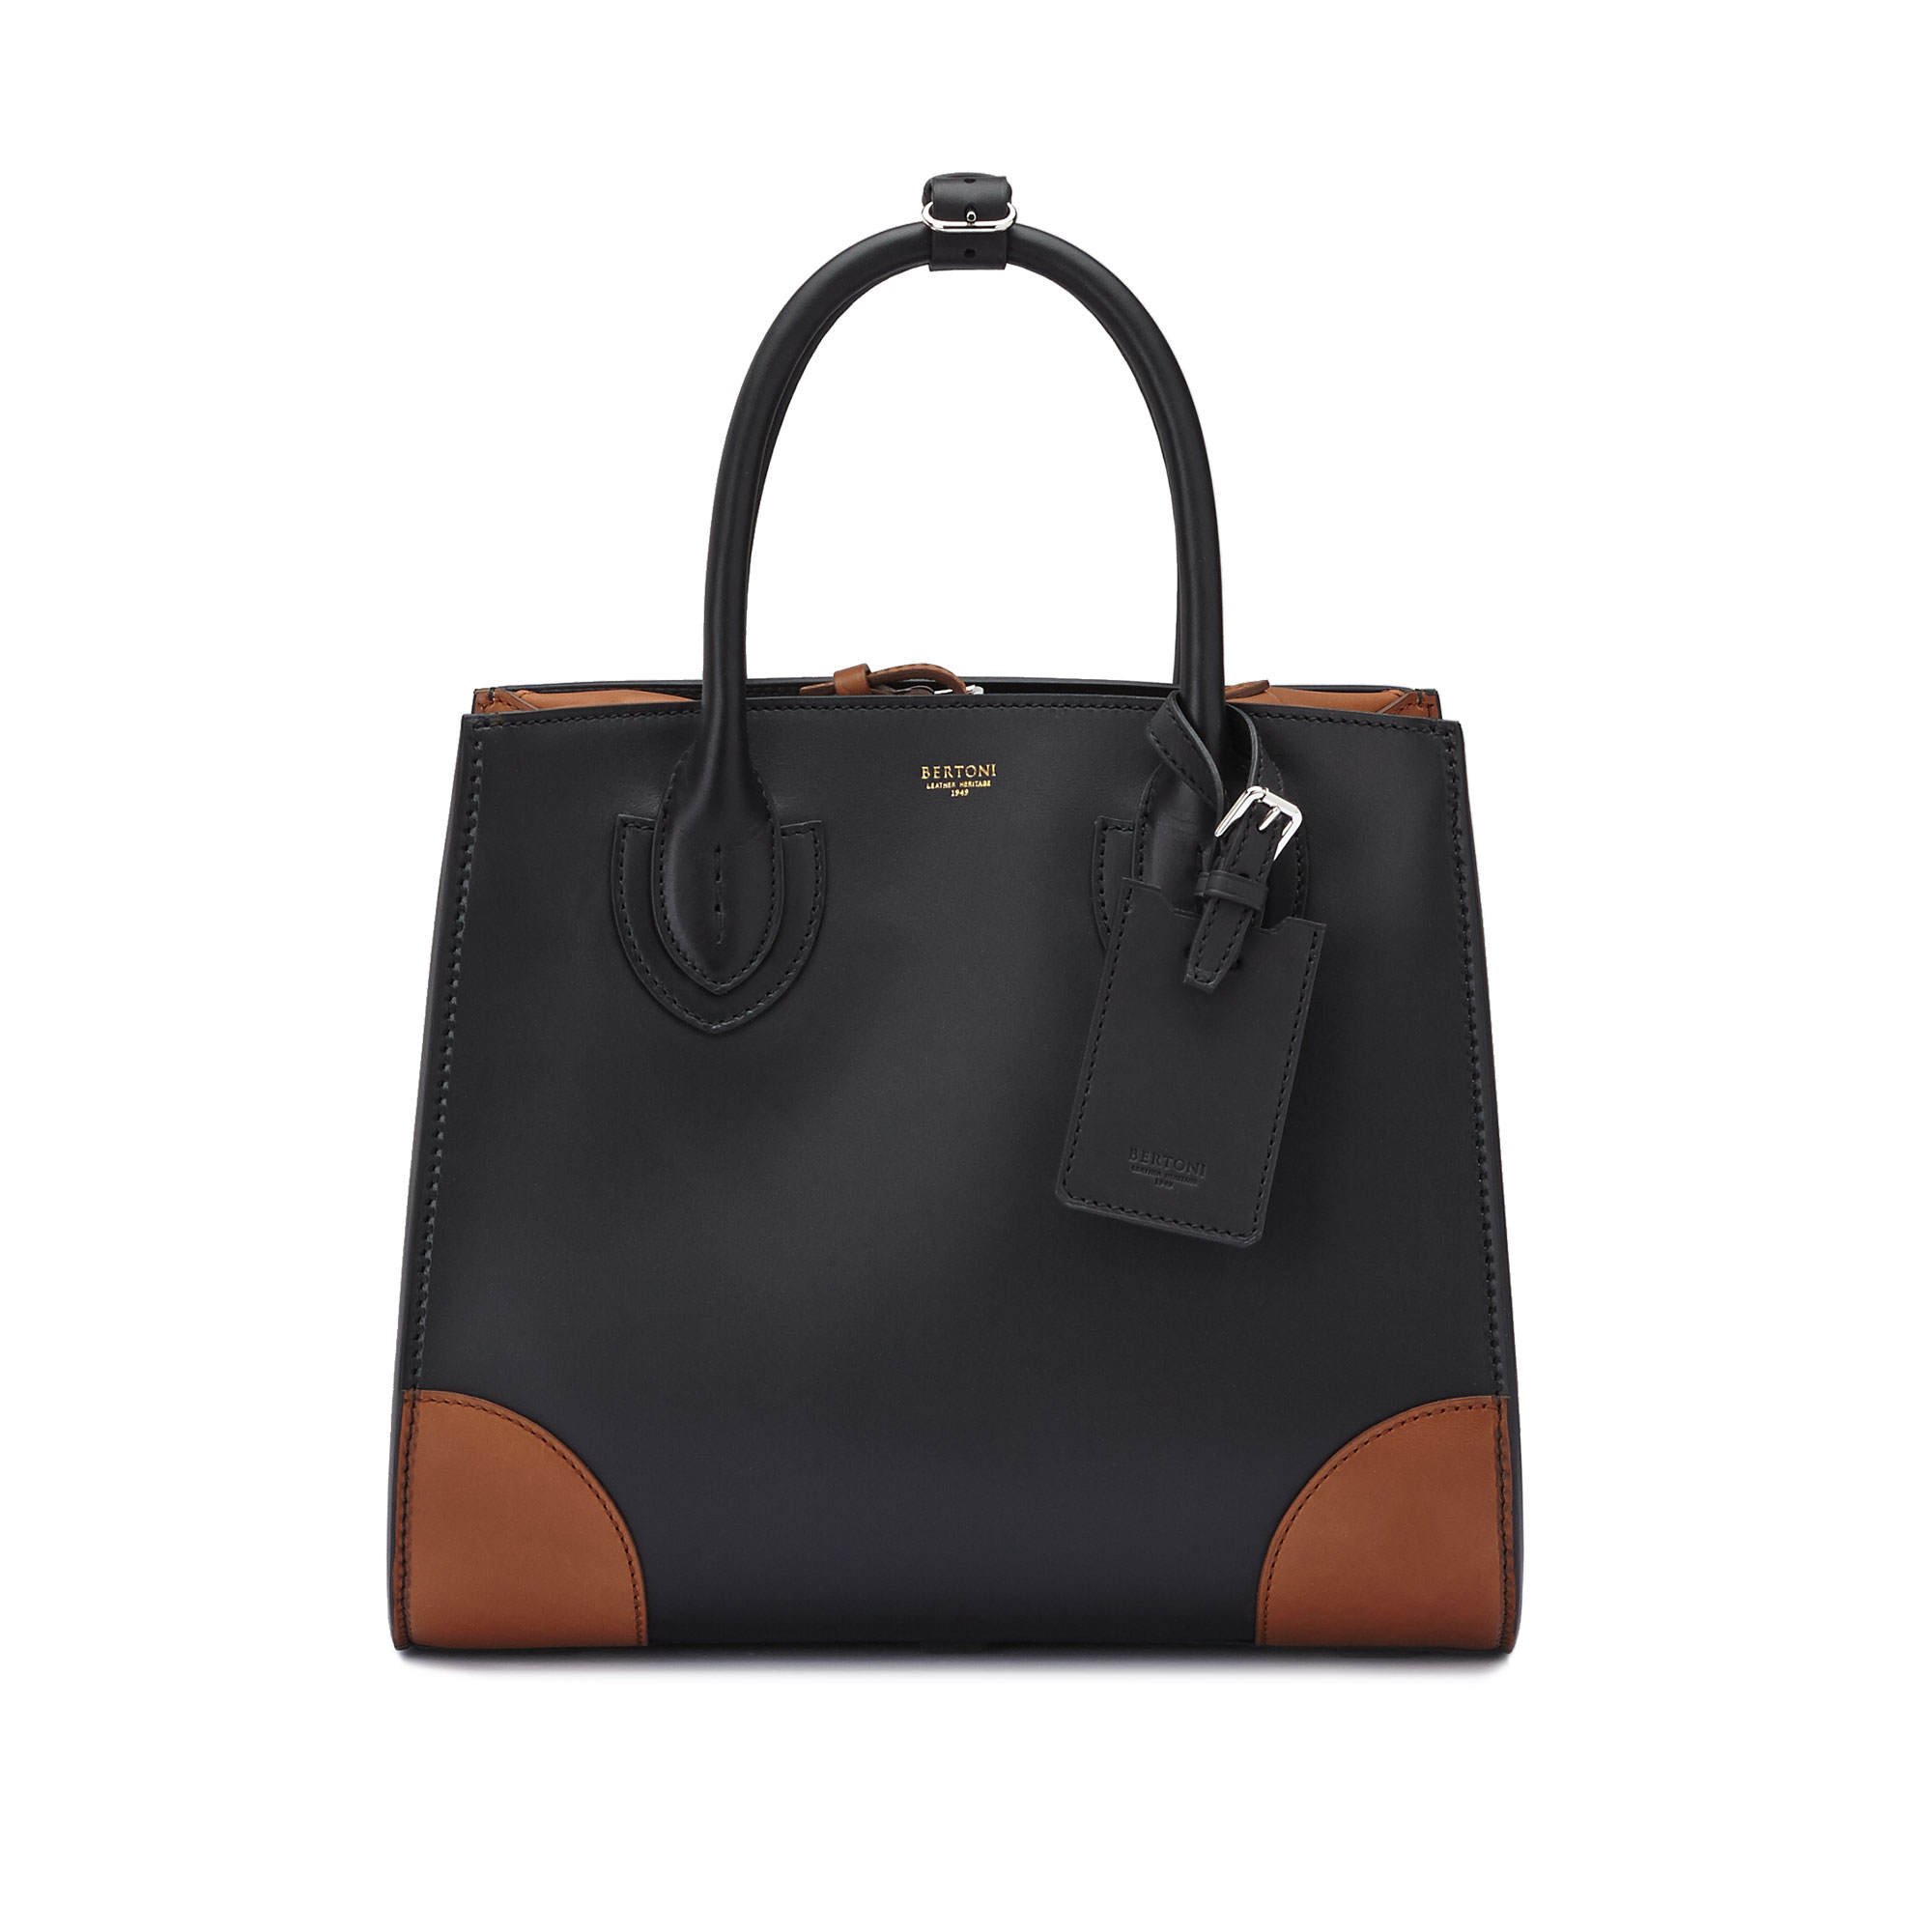 The black terrabruciata french calf Darcy large bag by Bertoni 1949 02